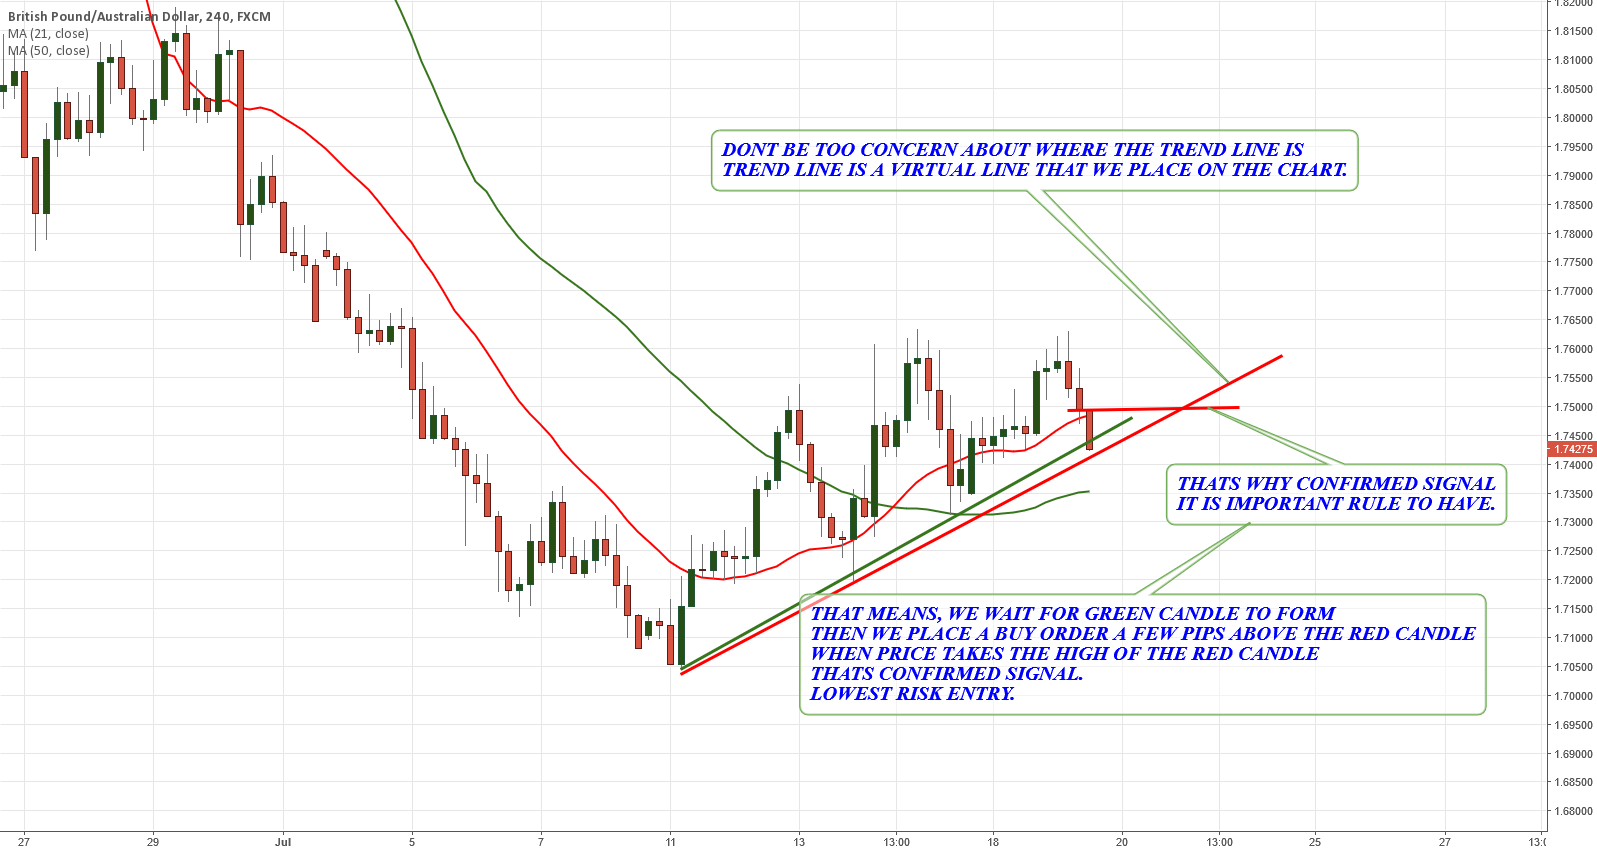 GBPAUD WHY DO WE WANT CONFIRMED BUY SIGNAL